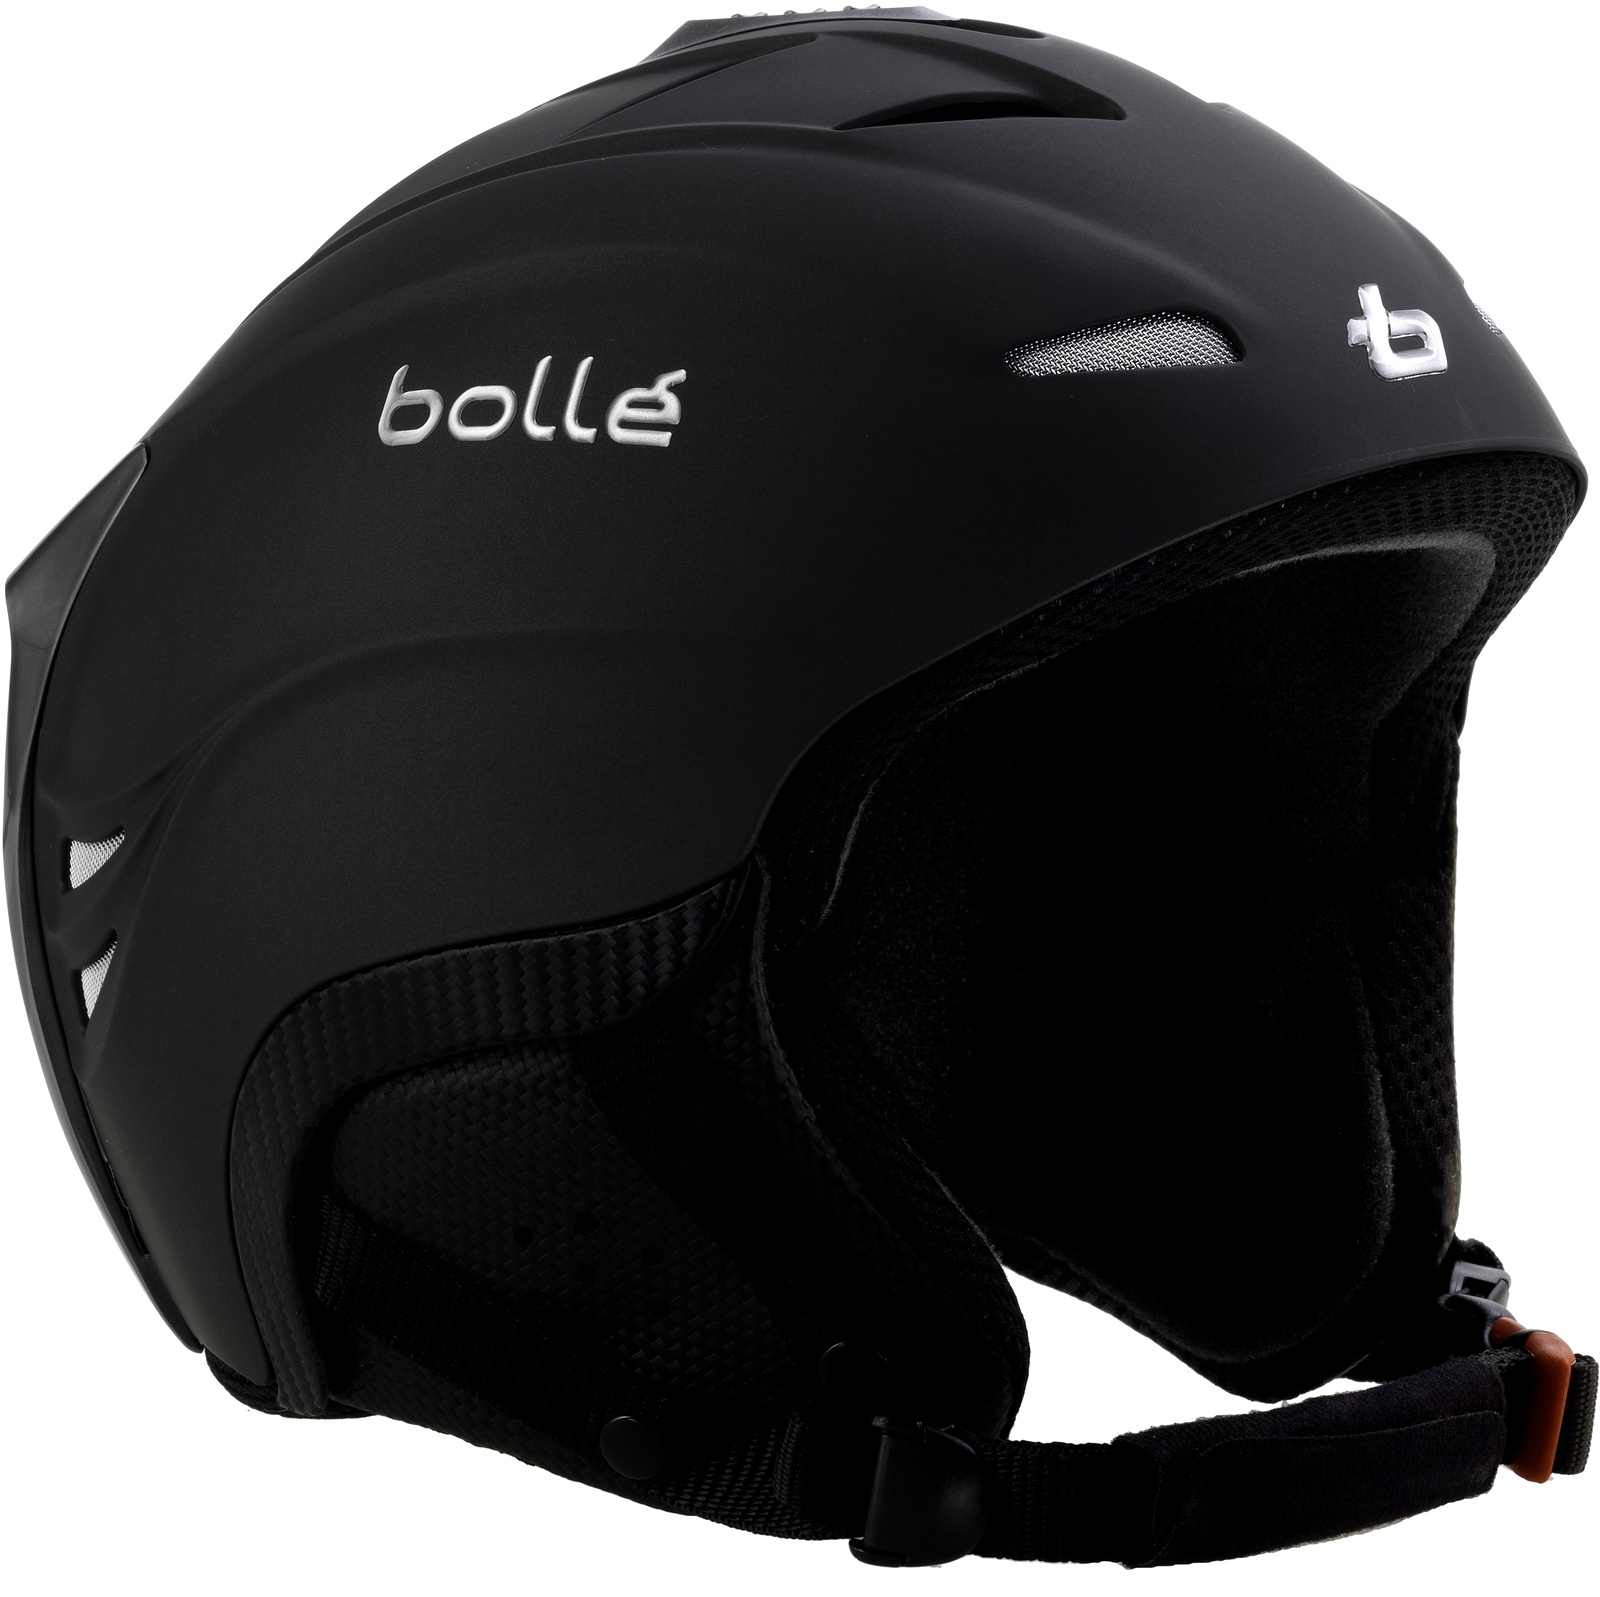 Helma Bollé POWDER Matte Black model 2011/12